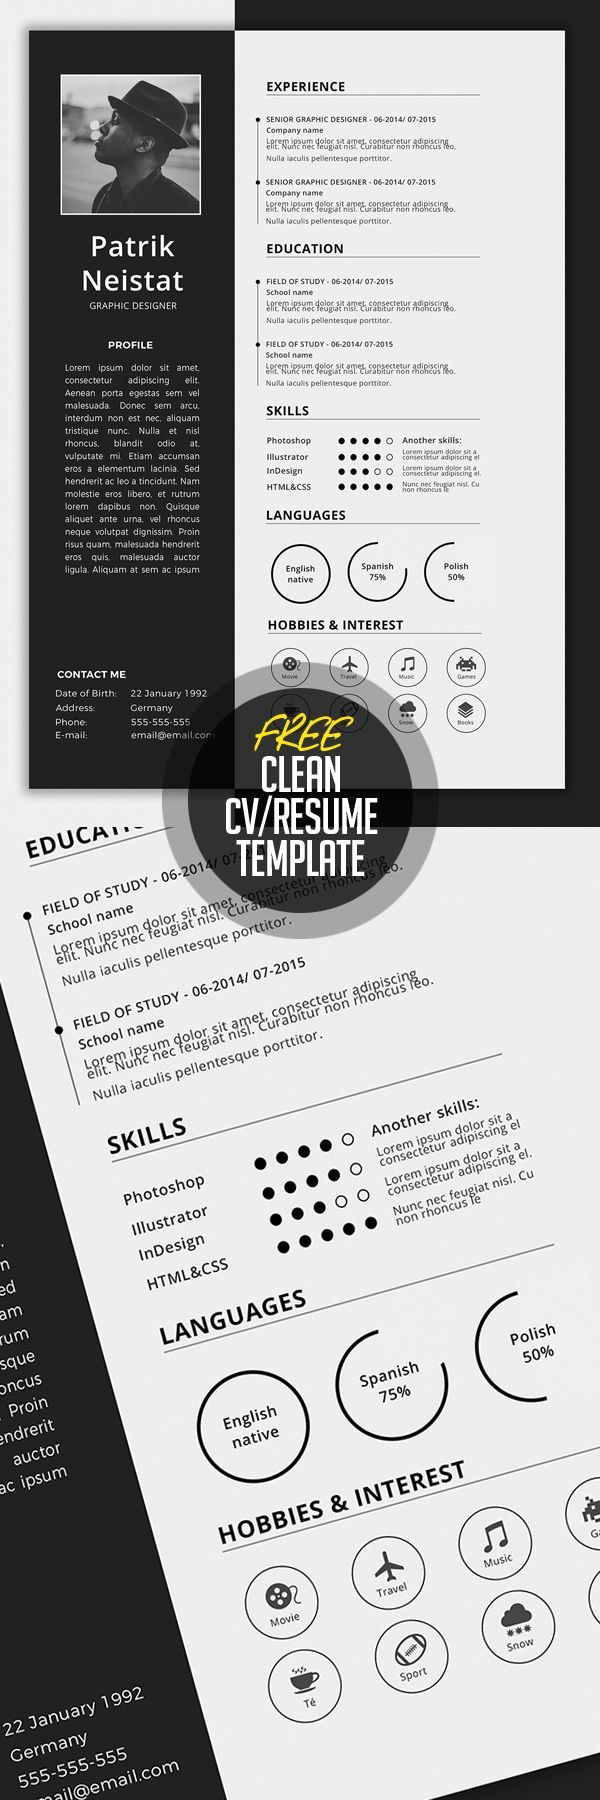 Simple CV/Resume Template Free Download … | Pinterest